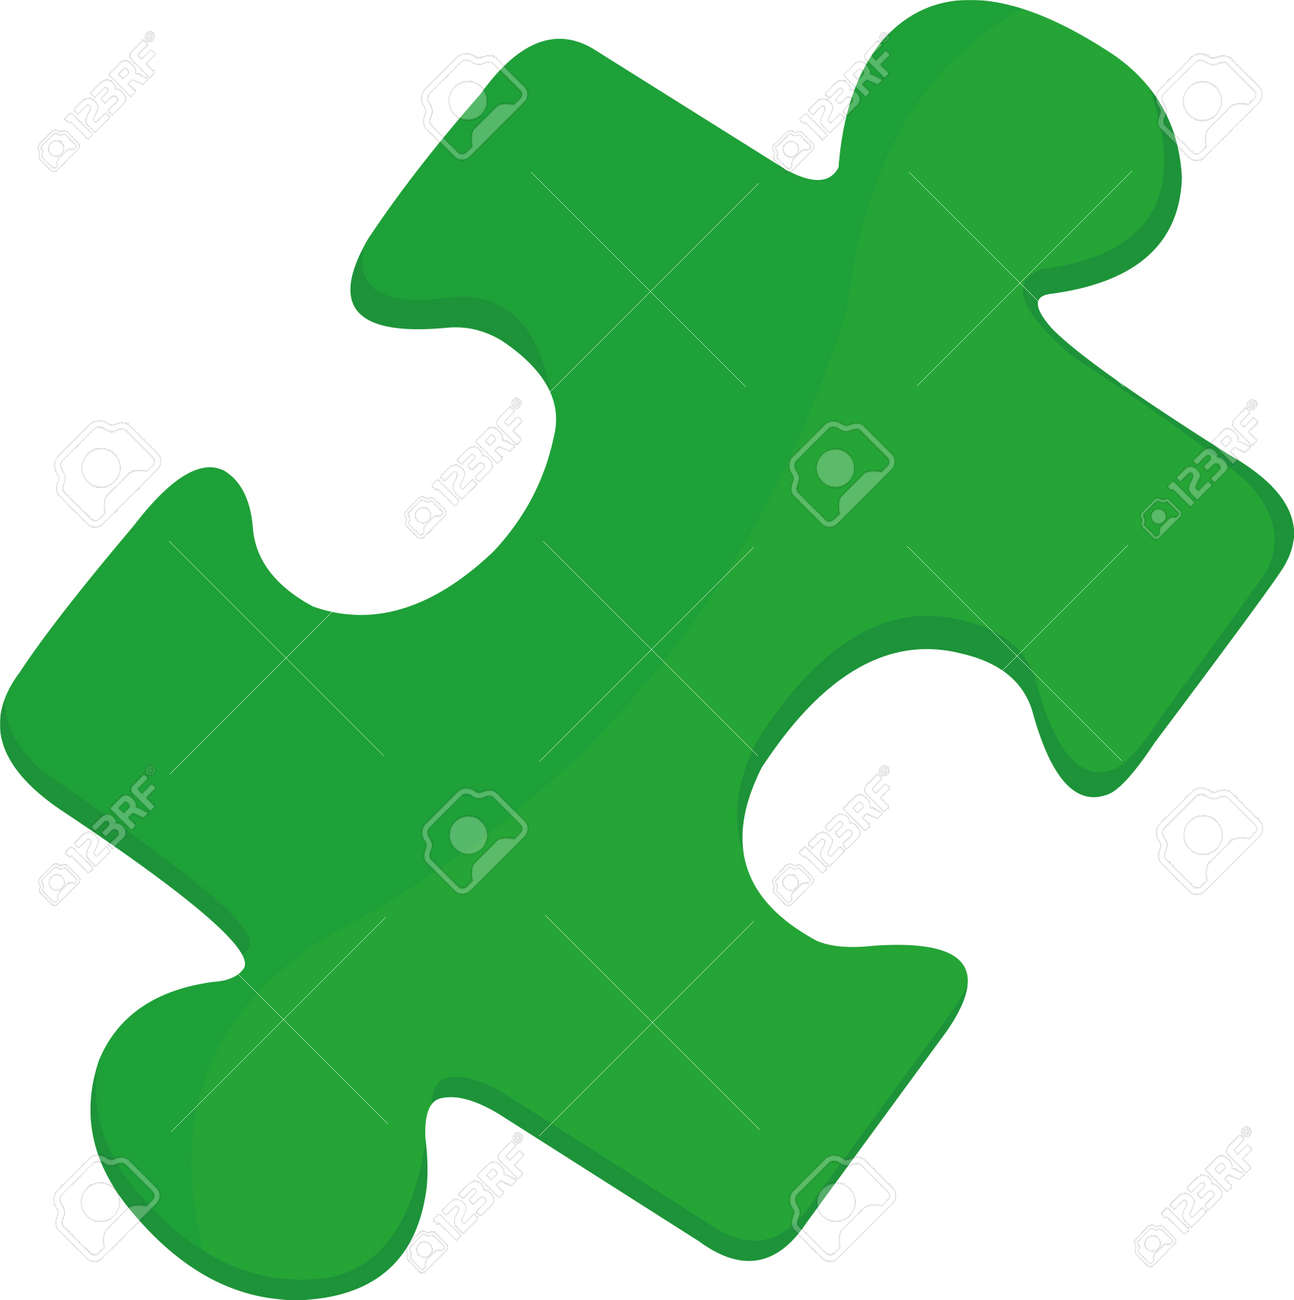 Vector illustration of emoticon of one piece of puzzle - 158146870